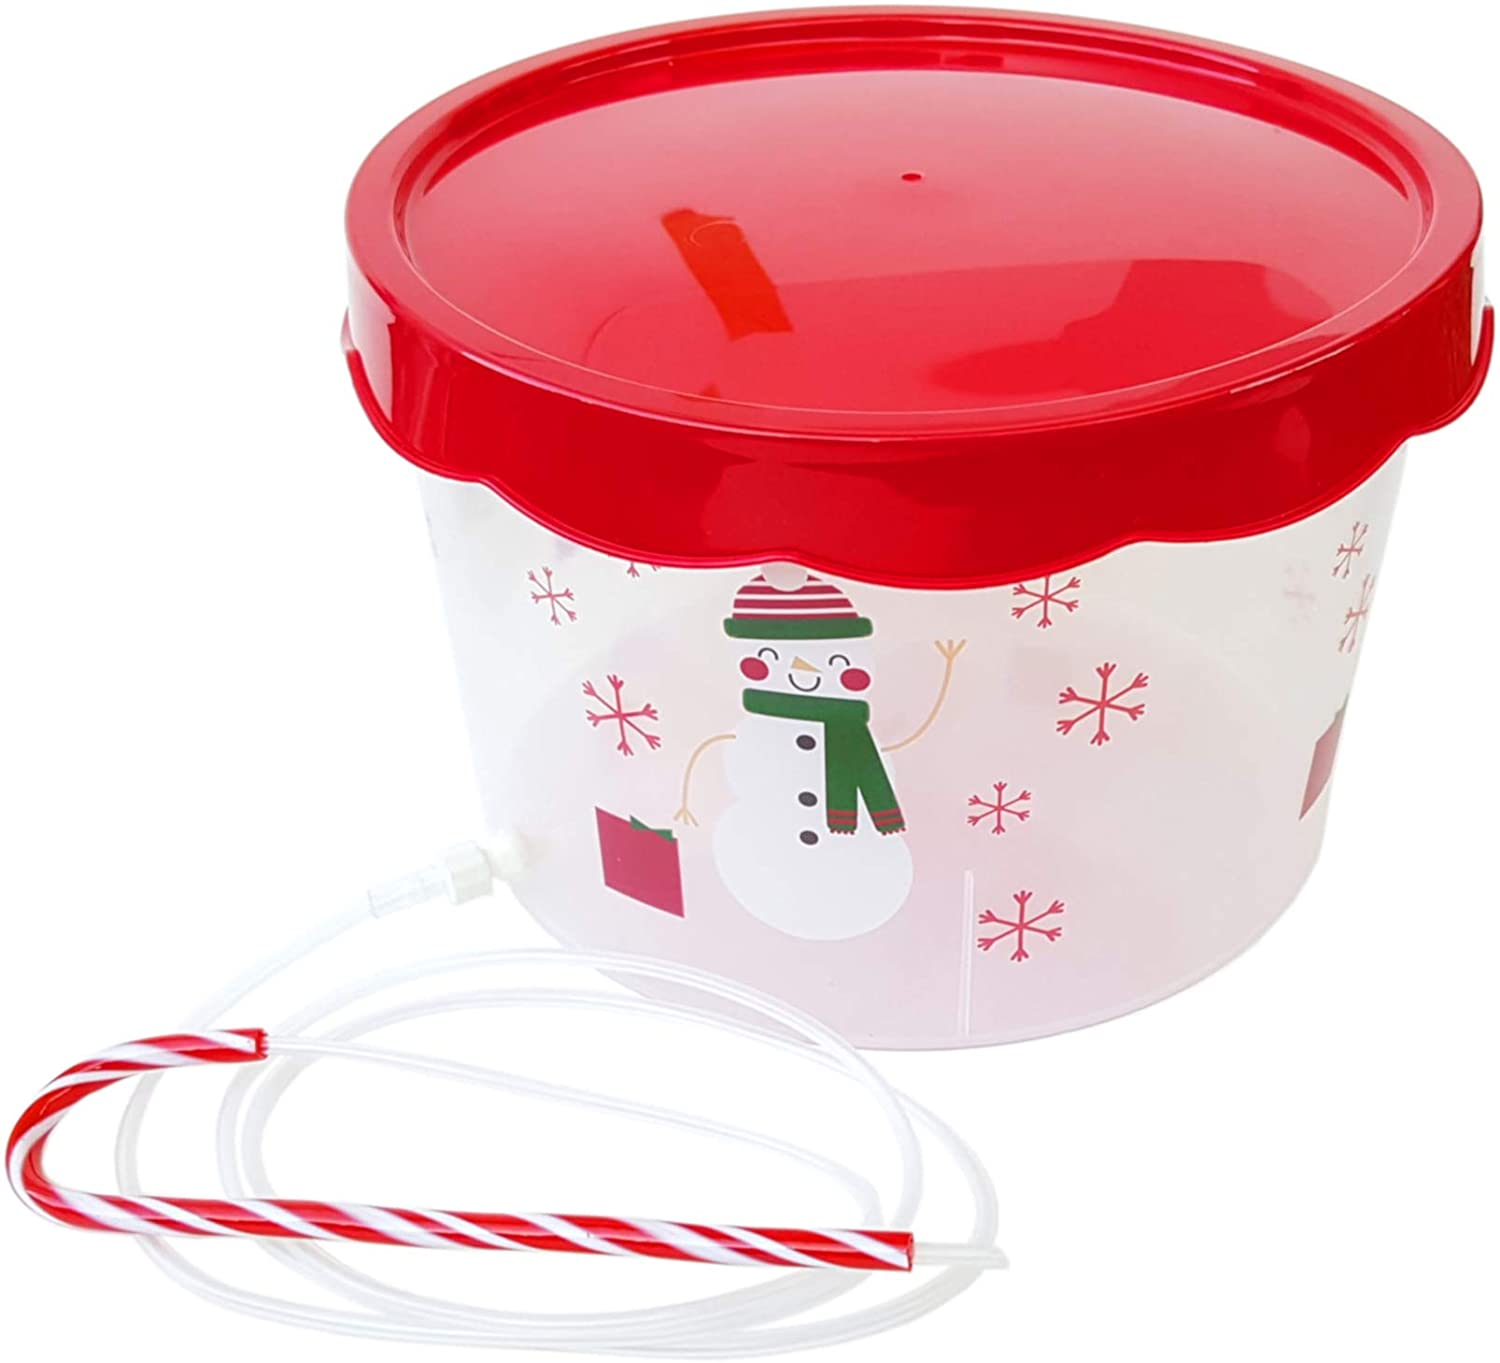 Santas Secret Treat - New 2019 Automatic Christmas Tree Watering System (Cookie Tub) Waterer Lowest Price   Made in USA Neutek SST-01